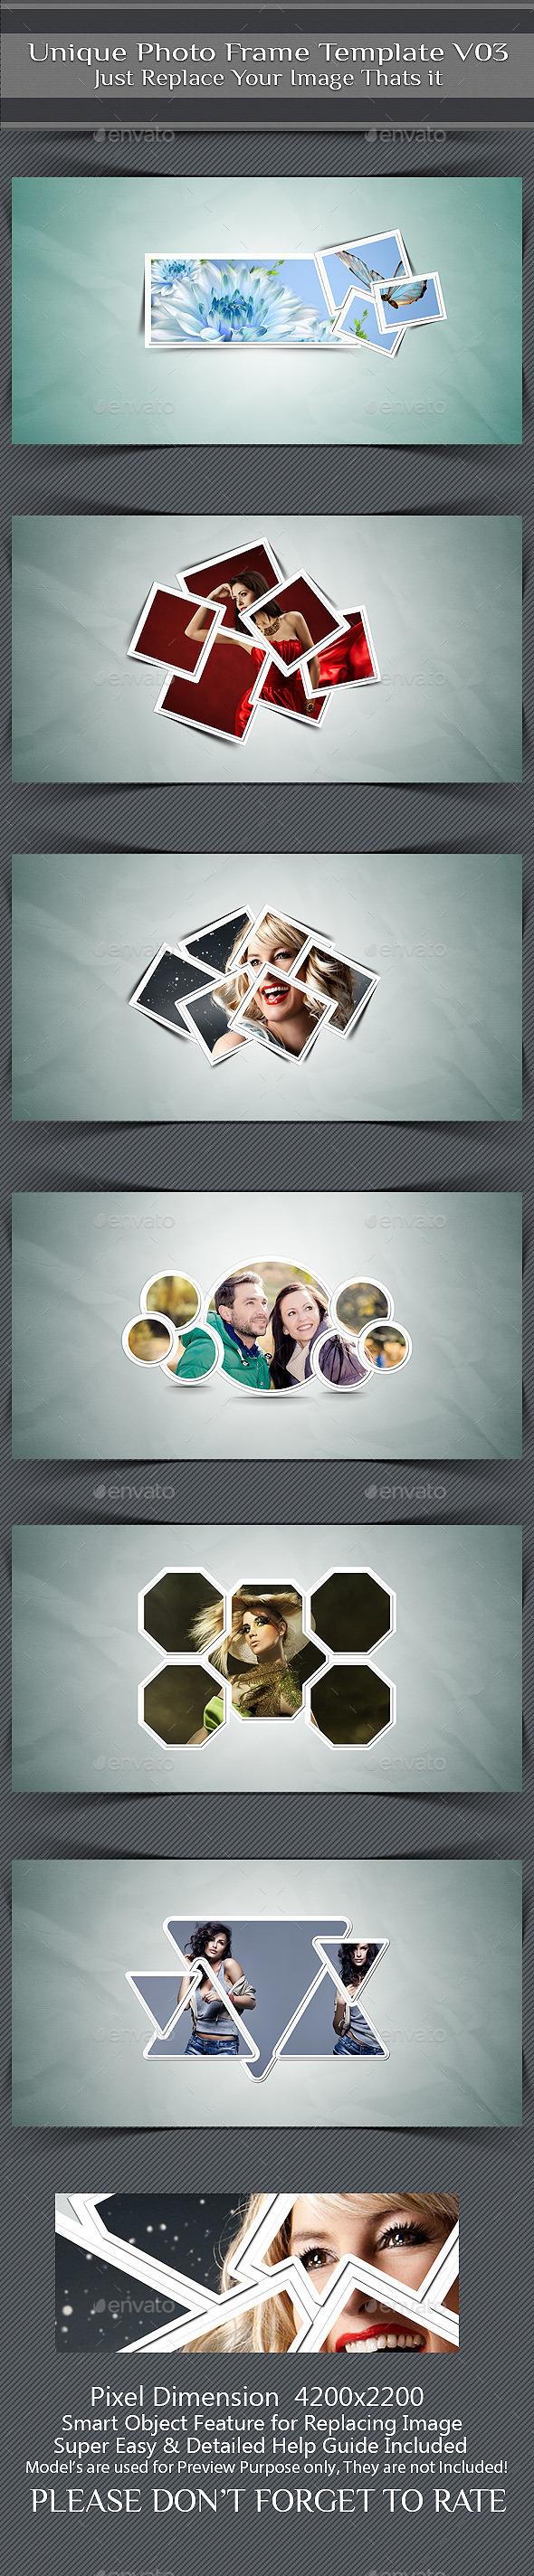 Unique Photo Frame Template V03